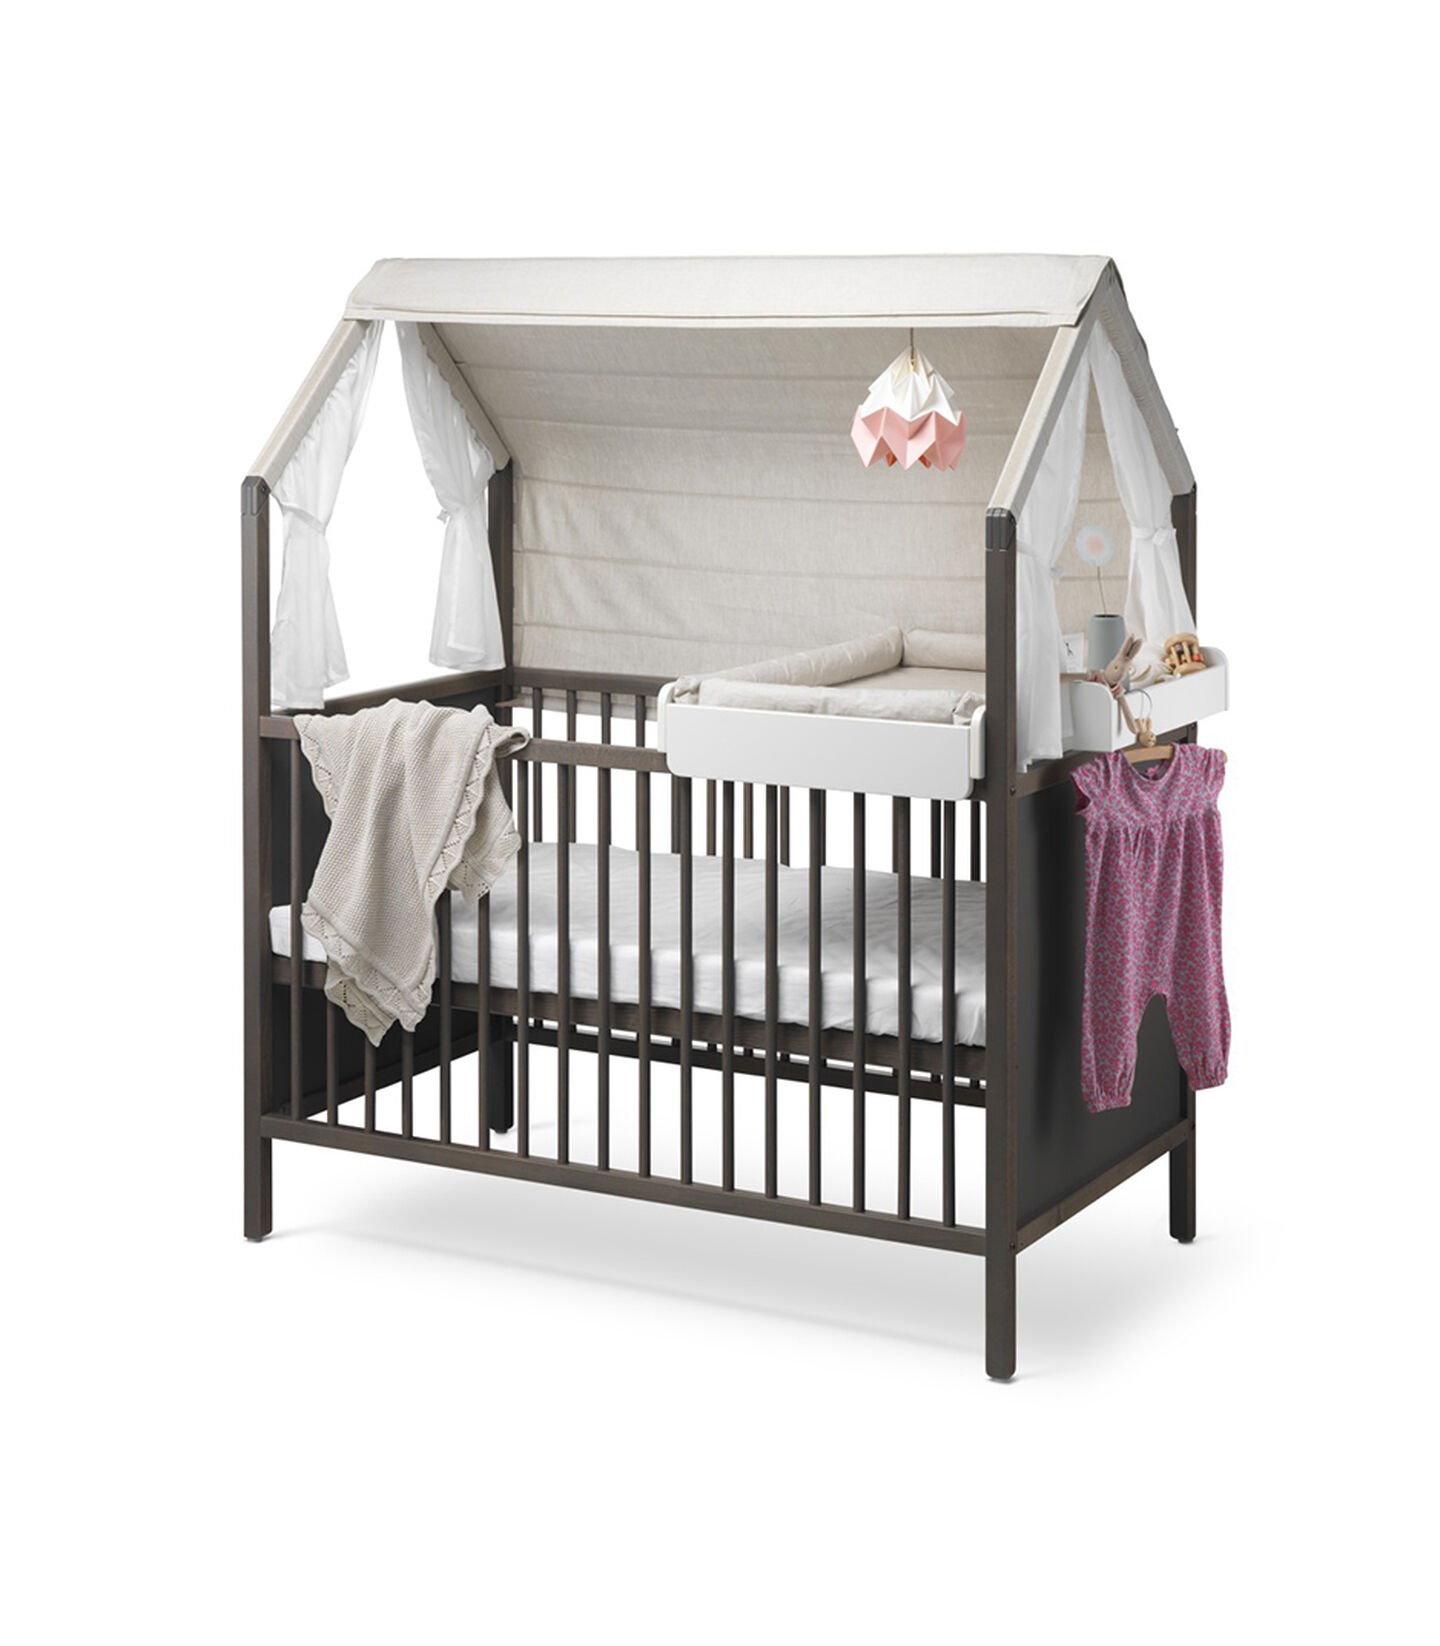 Stokke® Home™ Bed, Hazy Grey. With Changer. Stokke® Home™ Bed Roof textile, Natural.